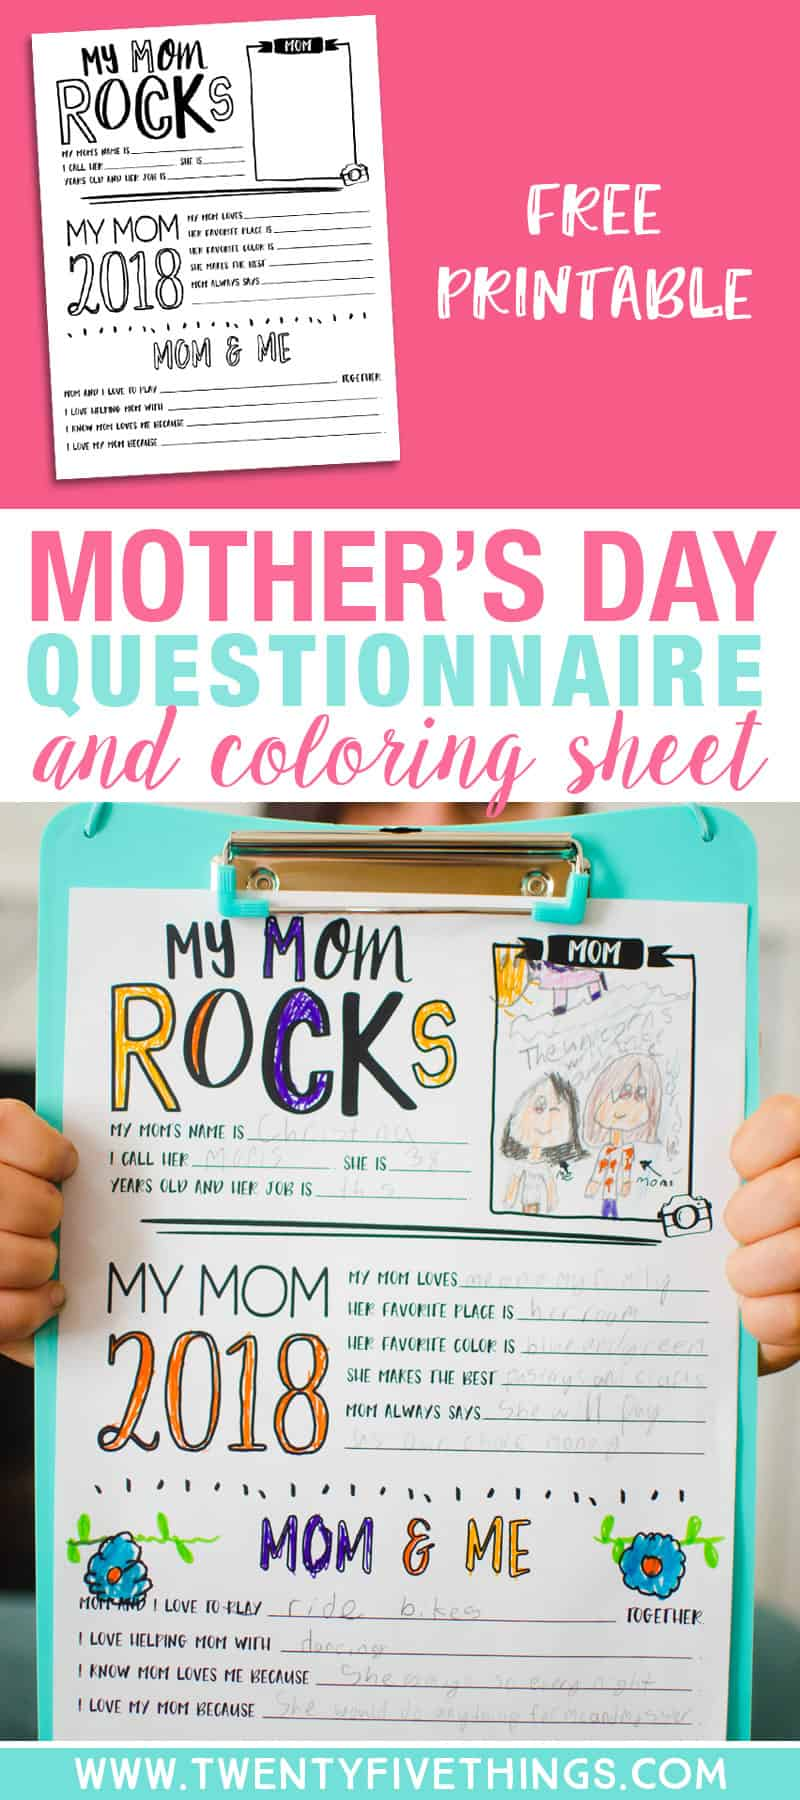 Help the little ones answer questions all about mom with this adorable Mother's Day questionnaire and coloring sheet.